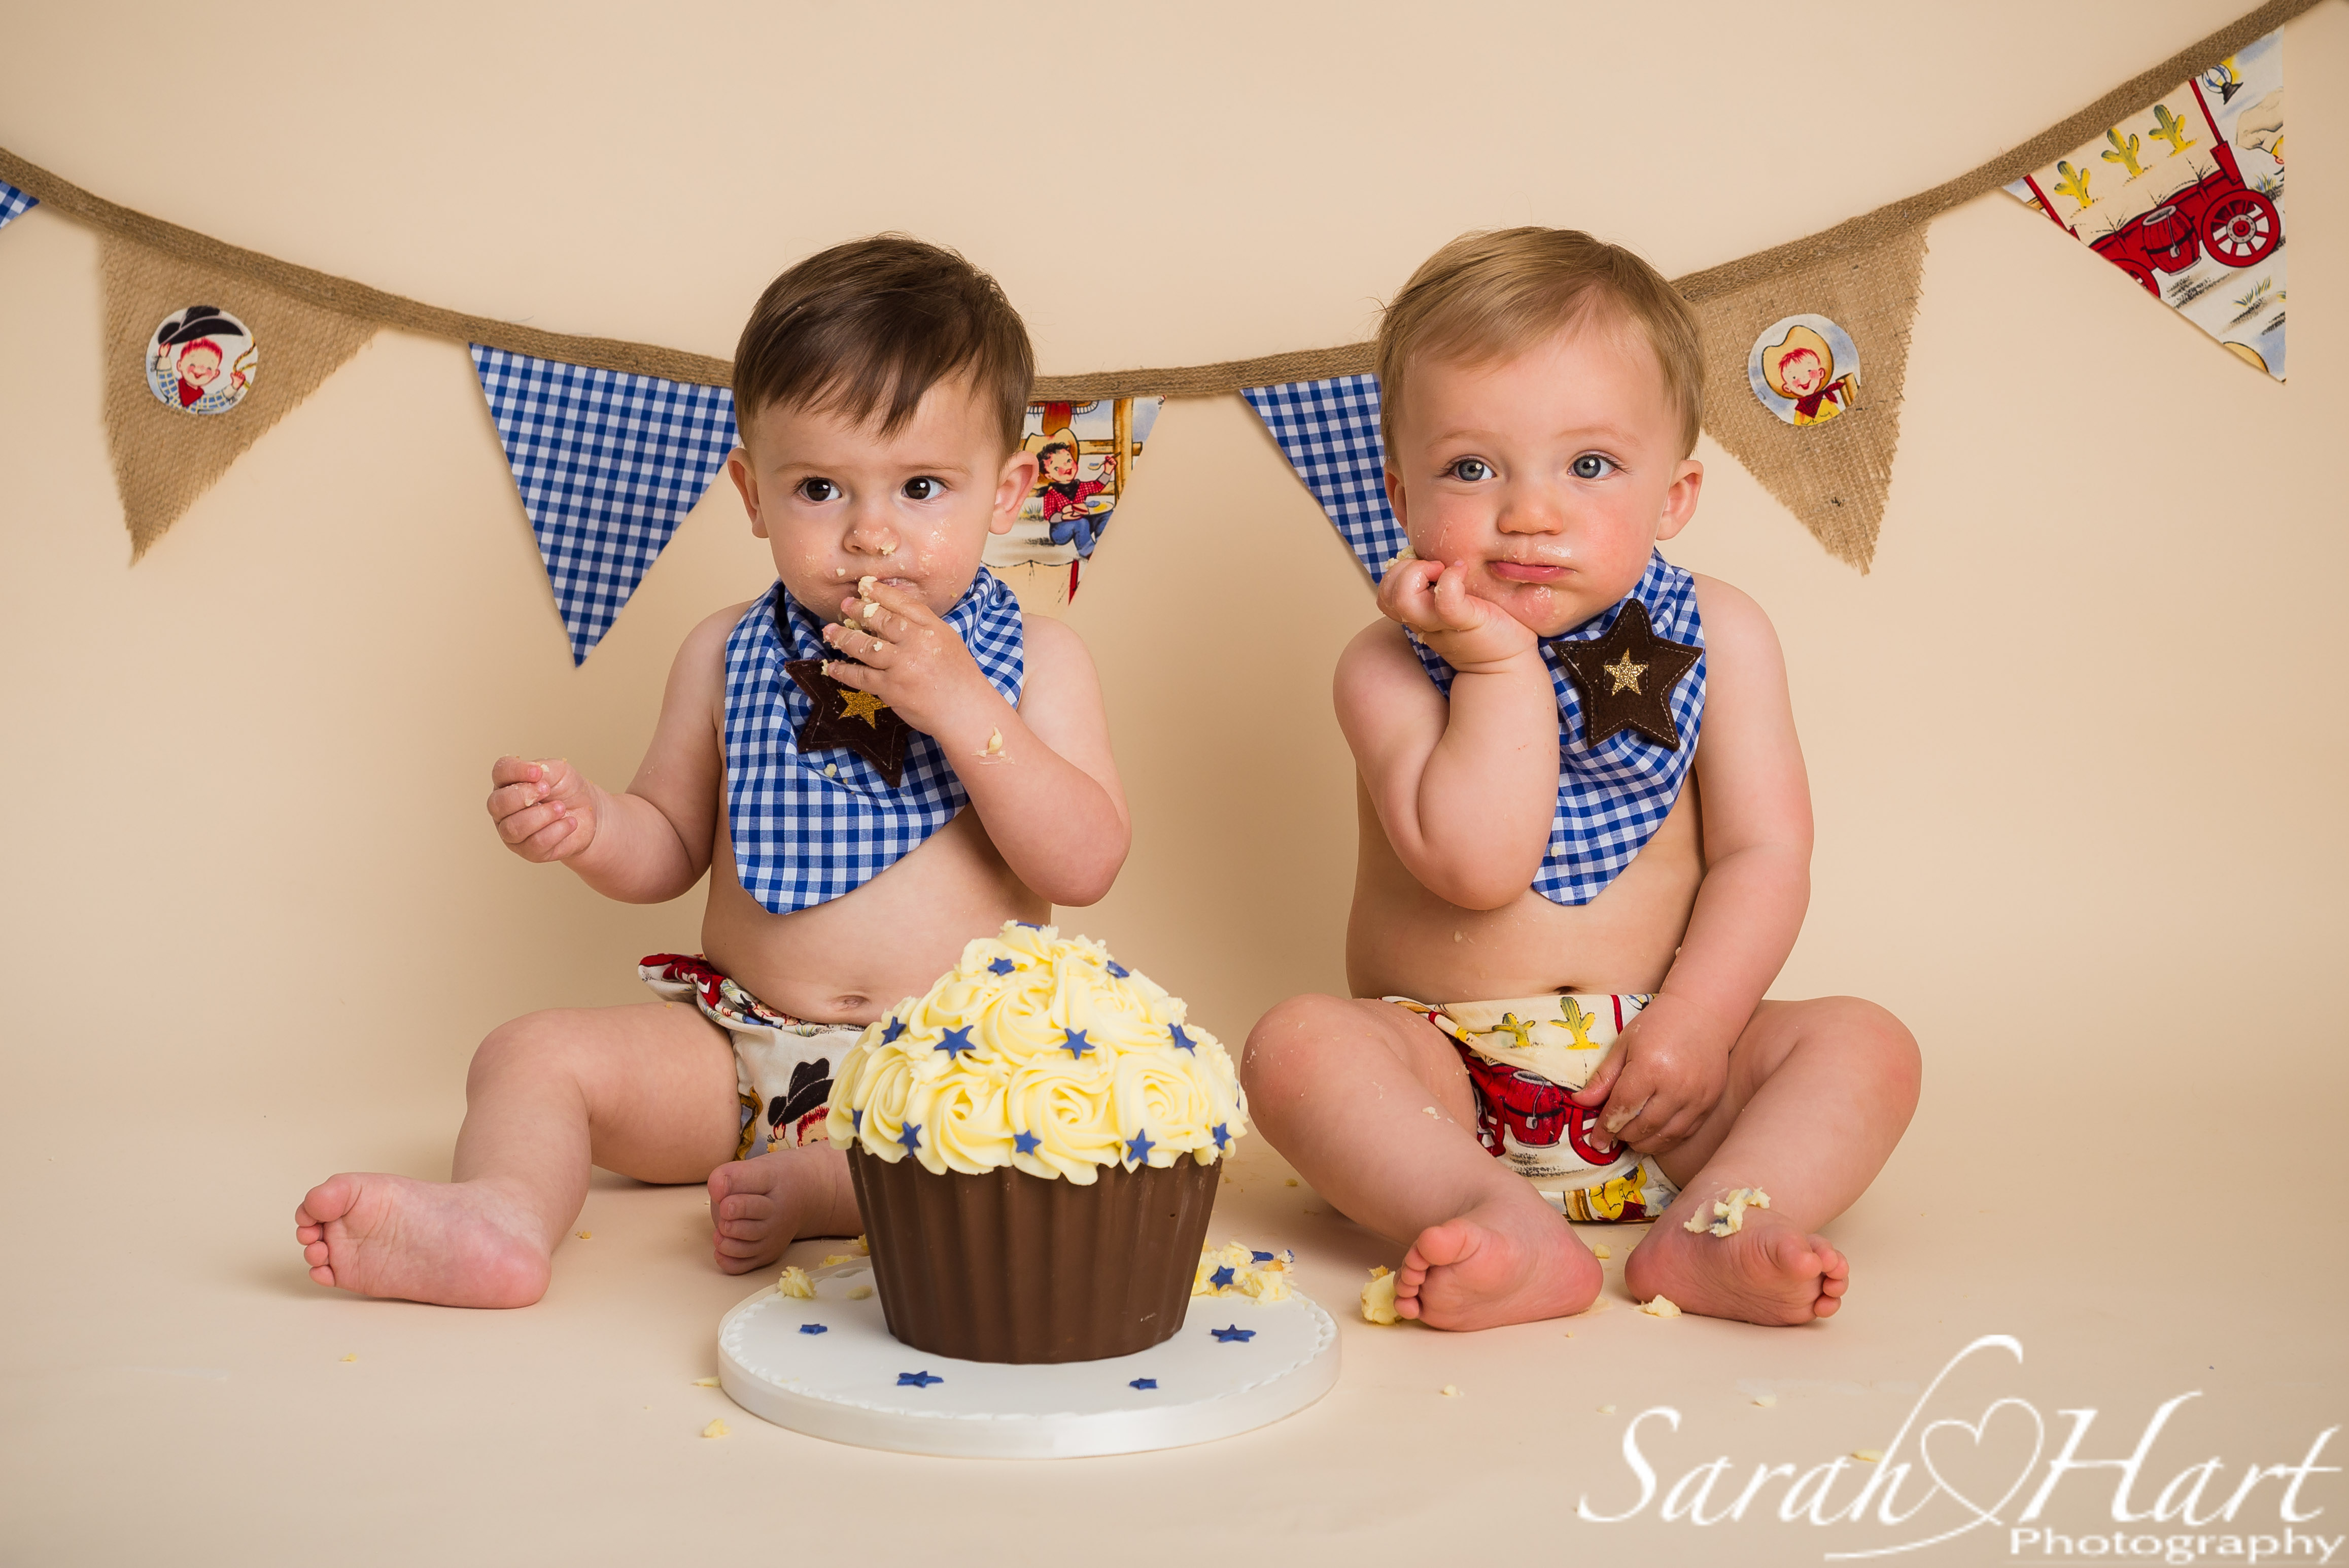 friends sharing a cake smash session, Tonbridge photographer, Sarah Hart